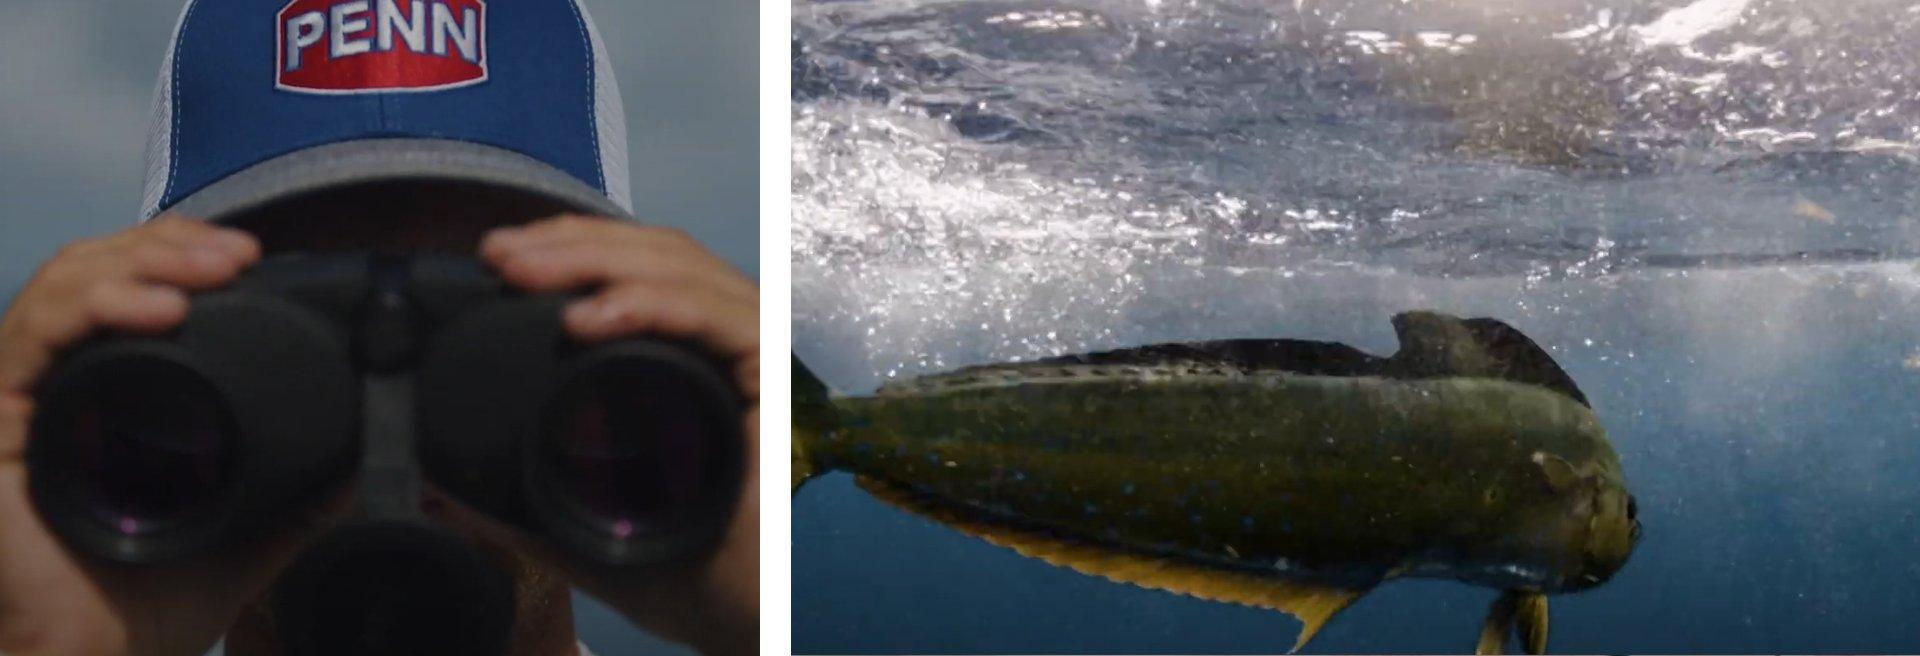 Left: person in Penn hat looking into binoculars; Right: fish swimming underwater